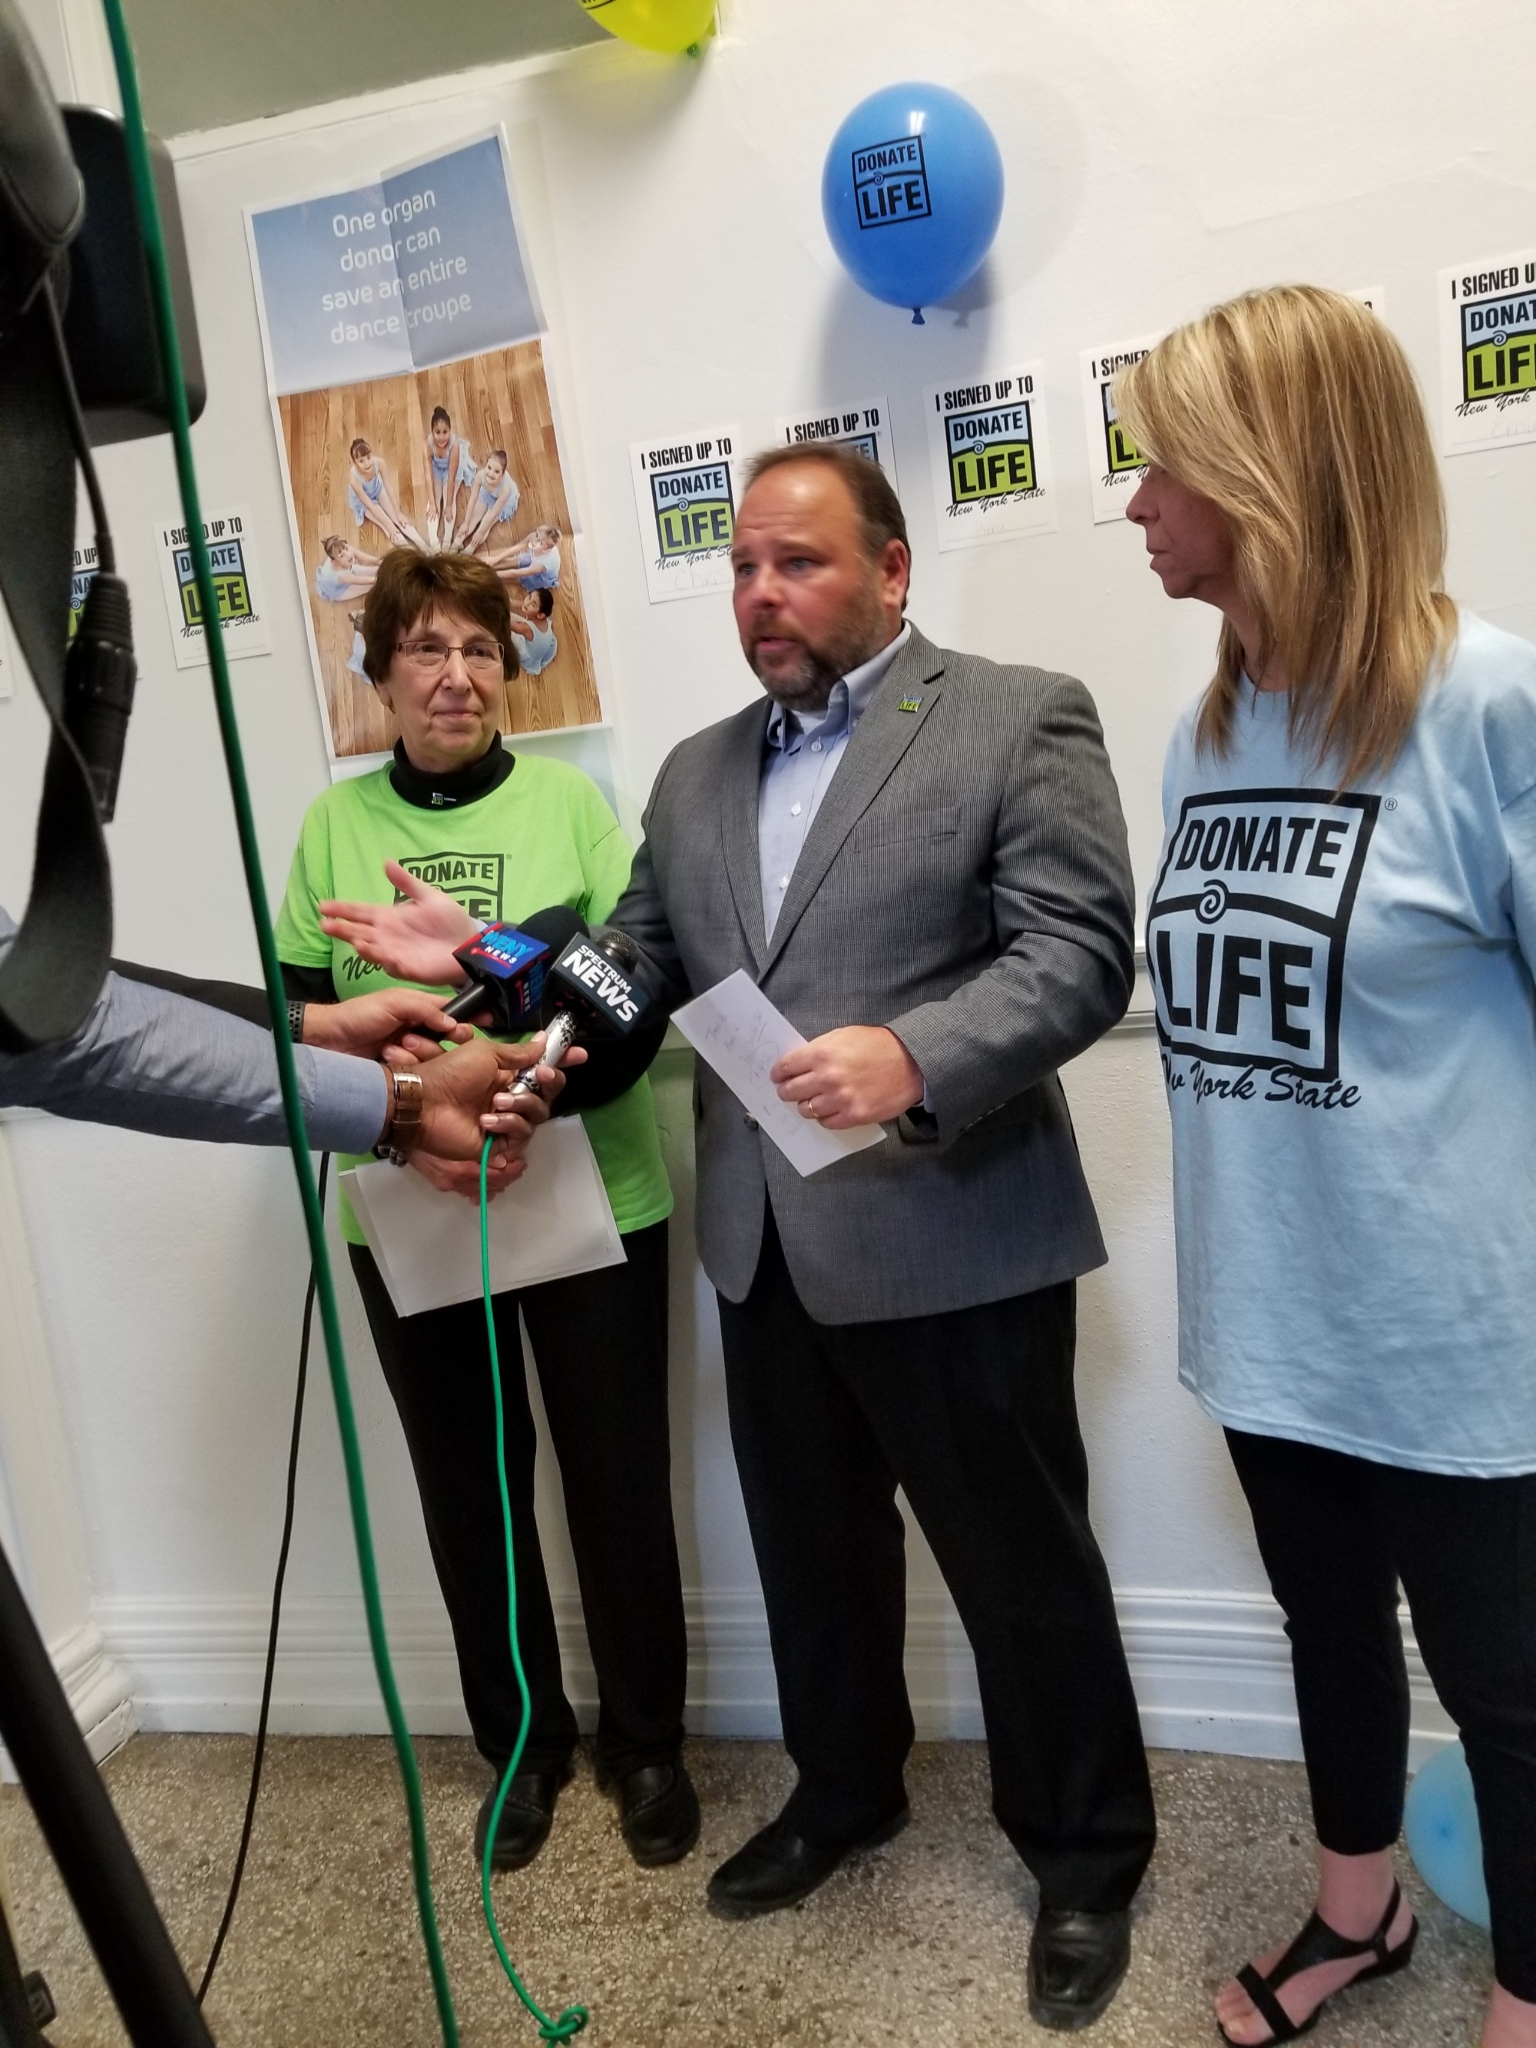 Assemblyman Palmesano speaking to reporters with Steuben County Clerk Judith Hunter pictured to the left and Deputy County Clerk Susan Cranmer pictured to the right.